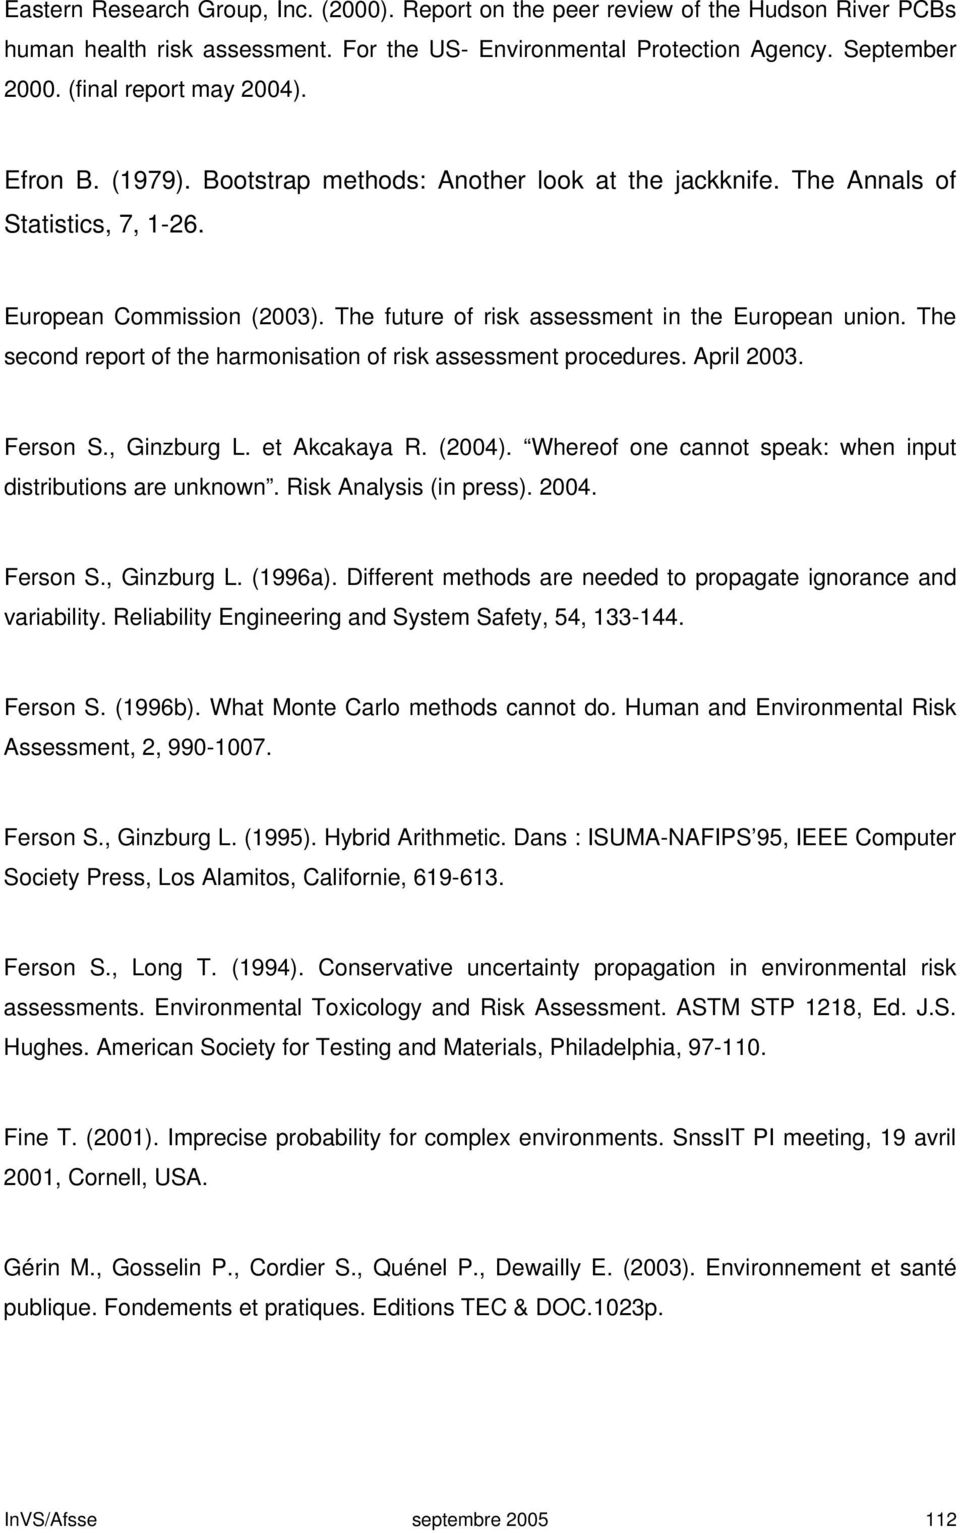 The future of risk assessment in the European union. The second report of the harmonisation of risk assessment procedures. April 2003. Ferson S., Ginzburg L. et Akcakaya R. (2004).